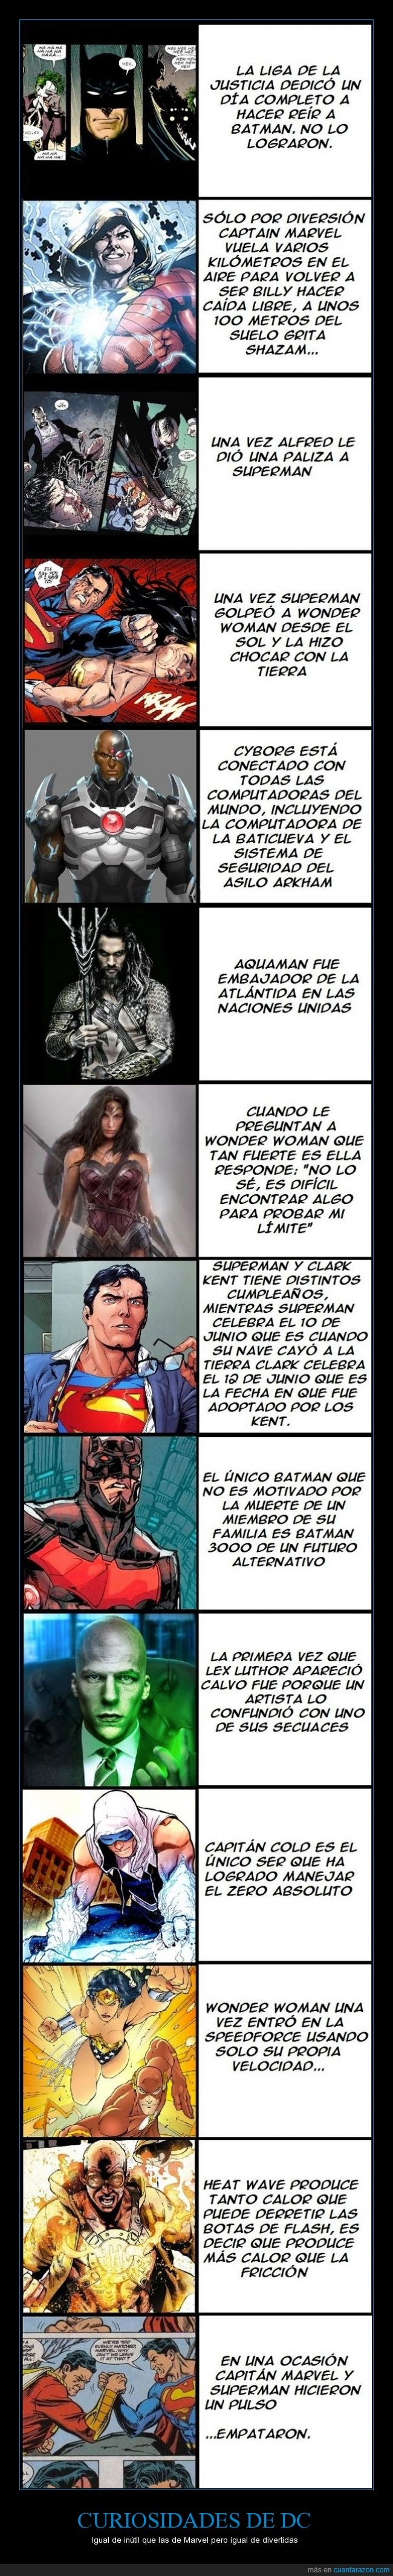 batman,comics,curiosidades,dc,flash,Marvel,shazam,superman,wonder woman